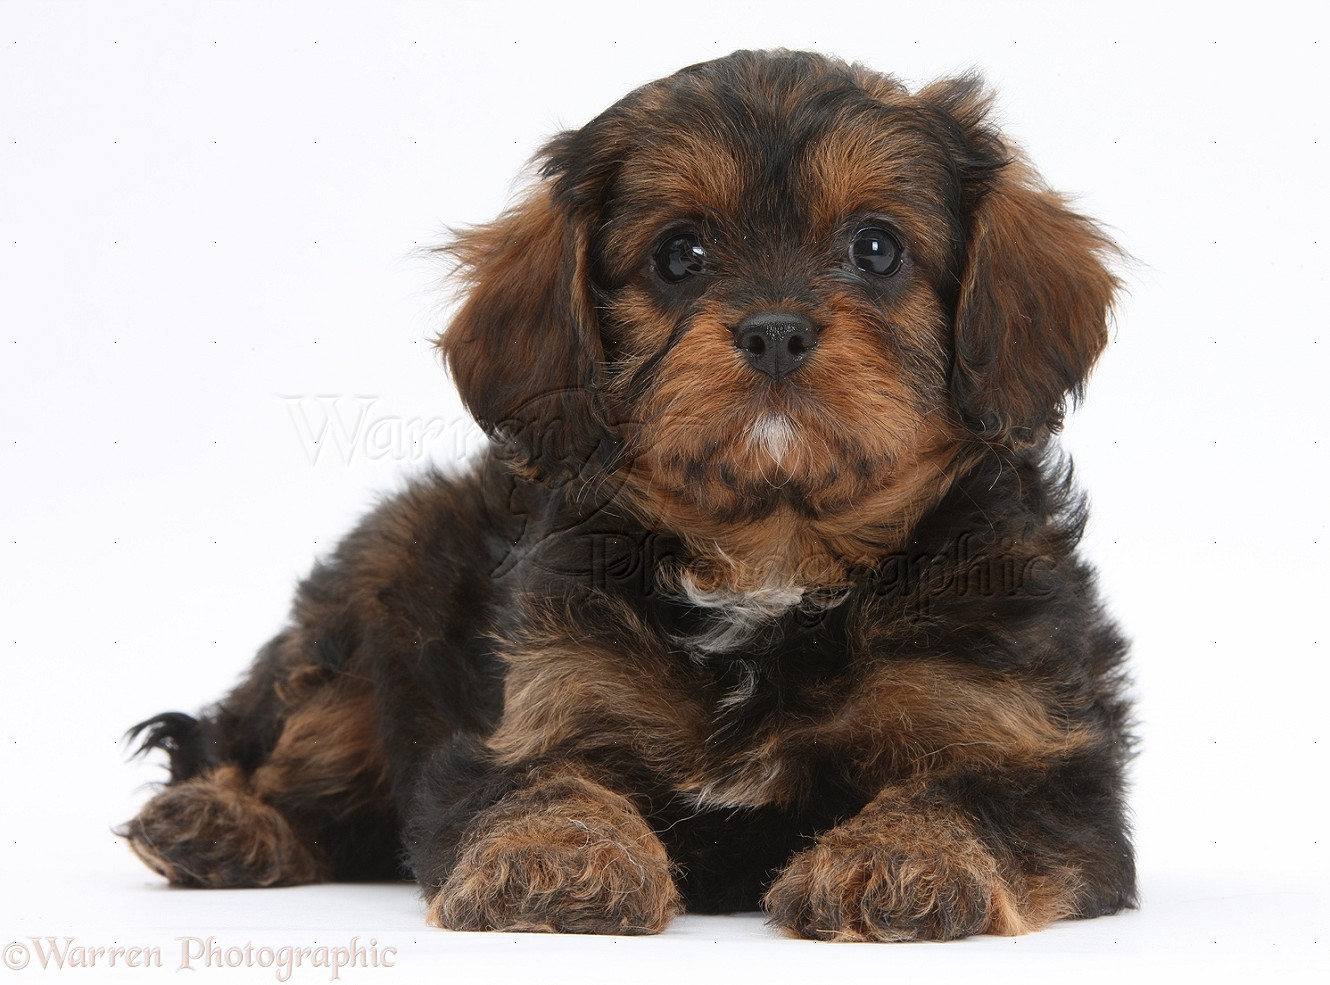 Dog Red Merle Cavapoo Pup Photo Wp32267